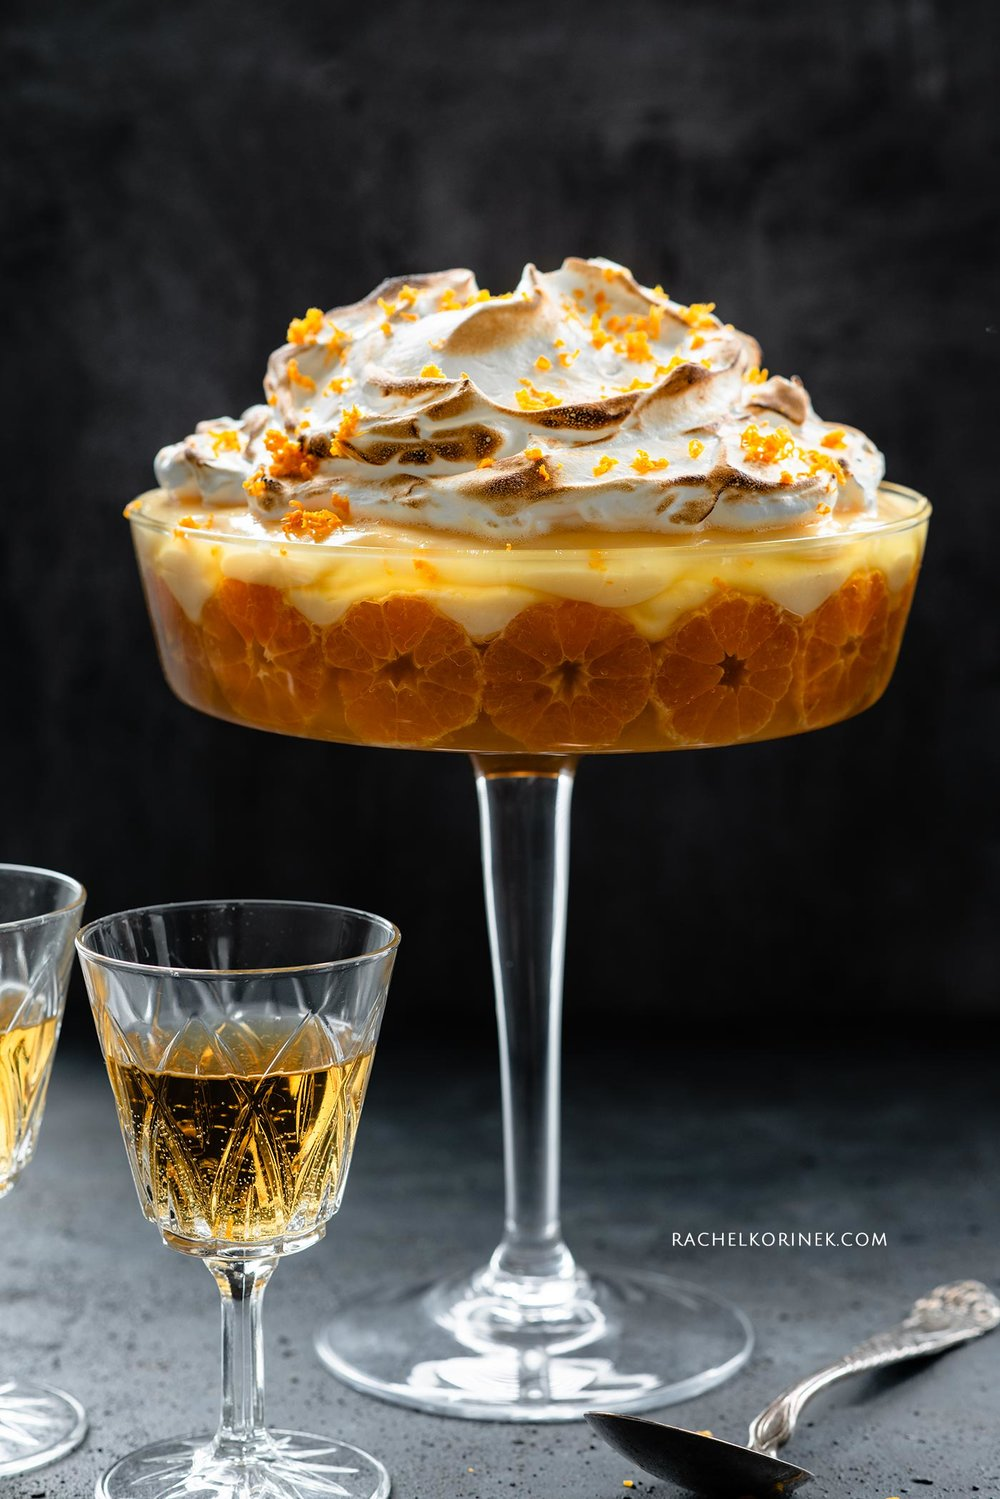 Rachel Korinek | Food Photographer Winter Clementine Trifle